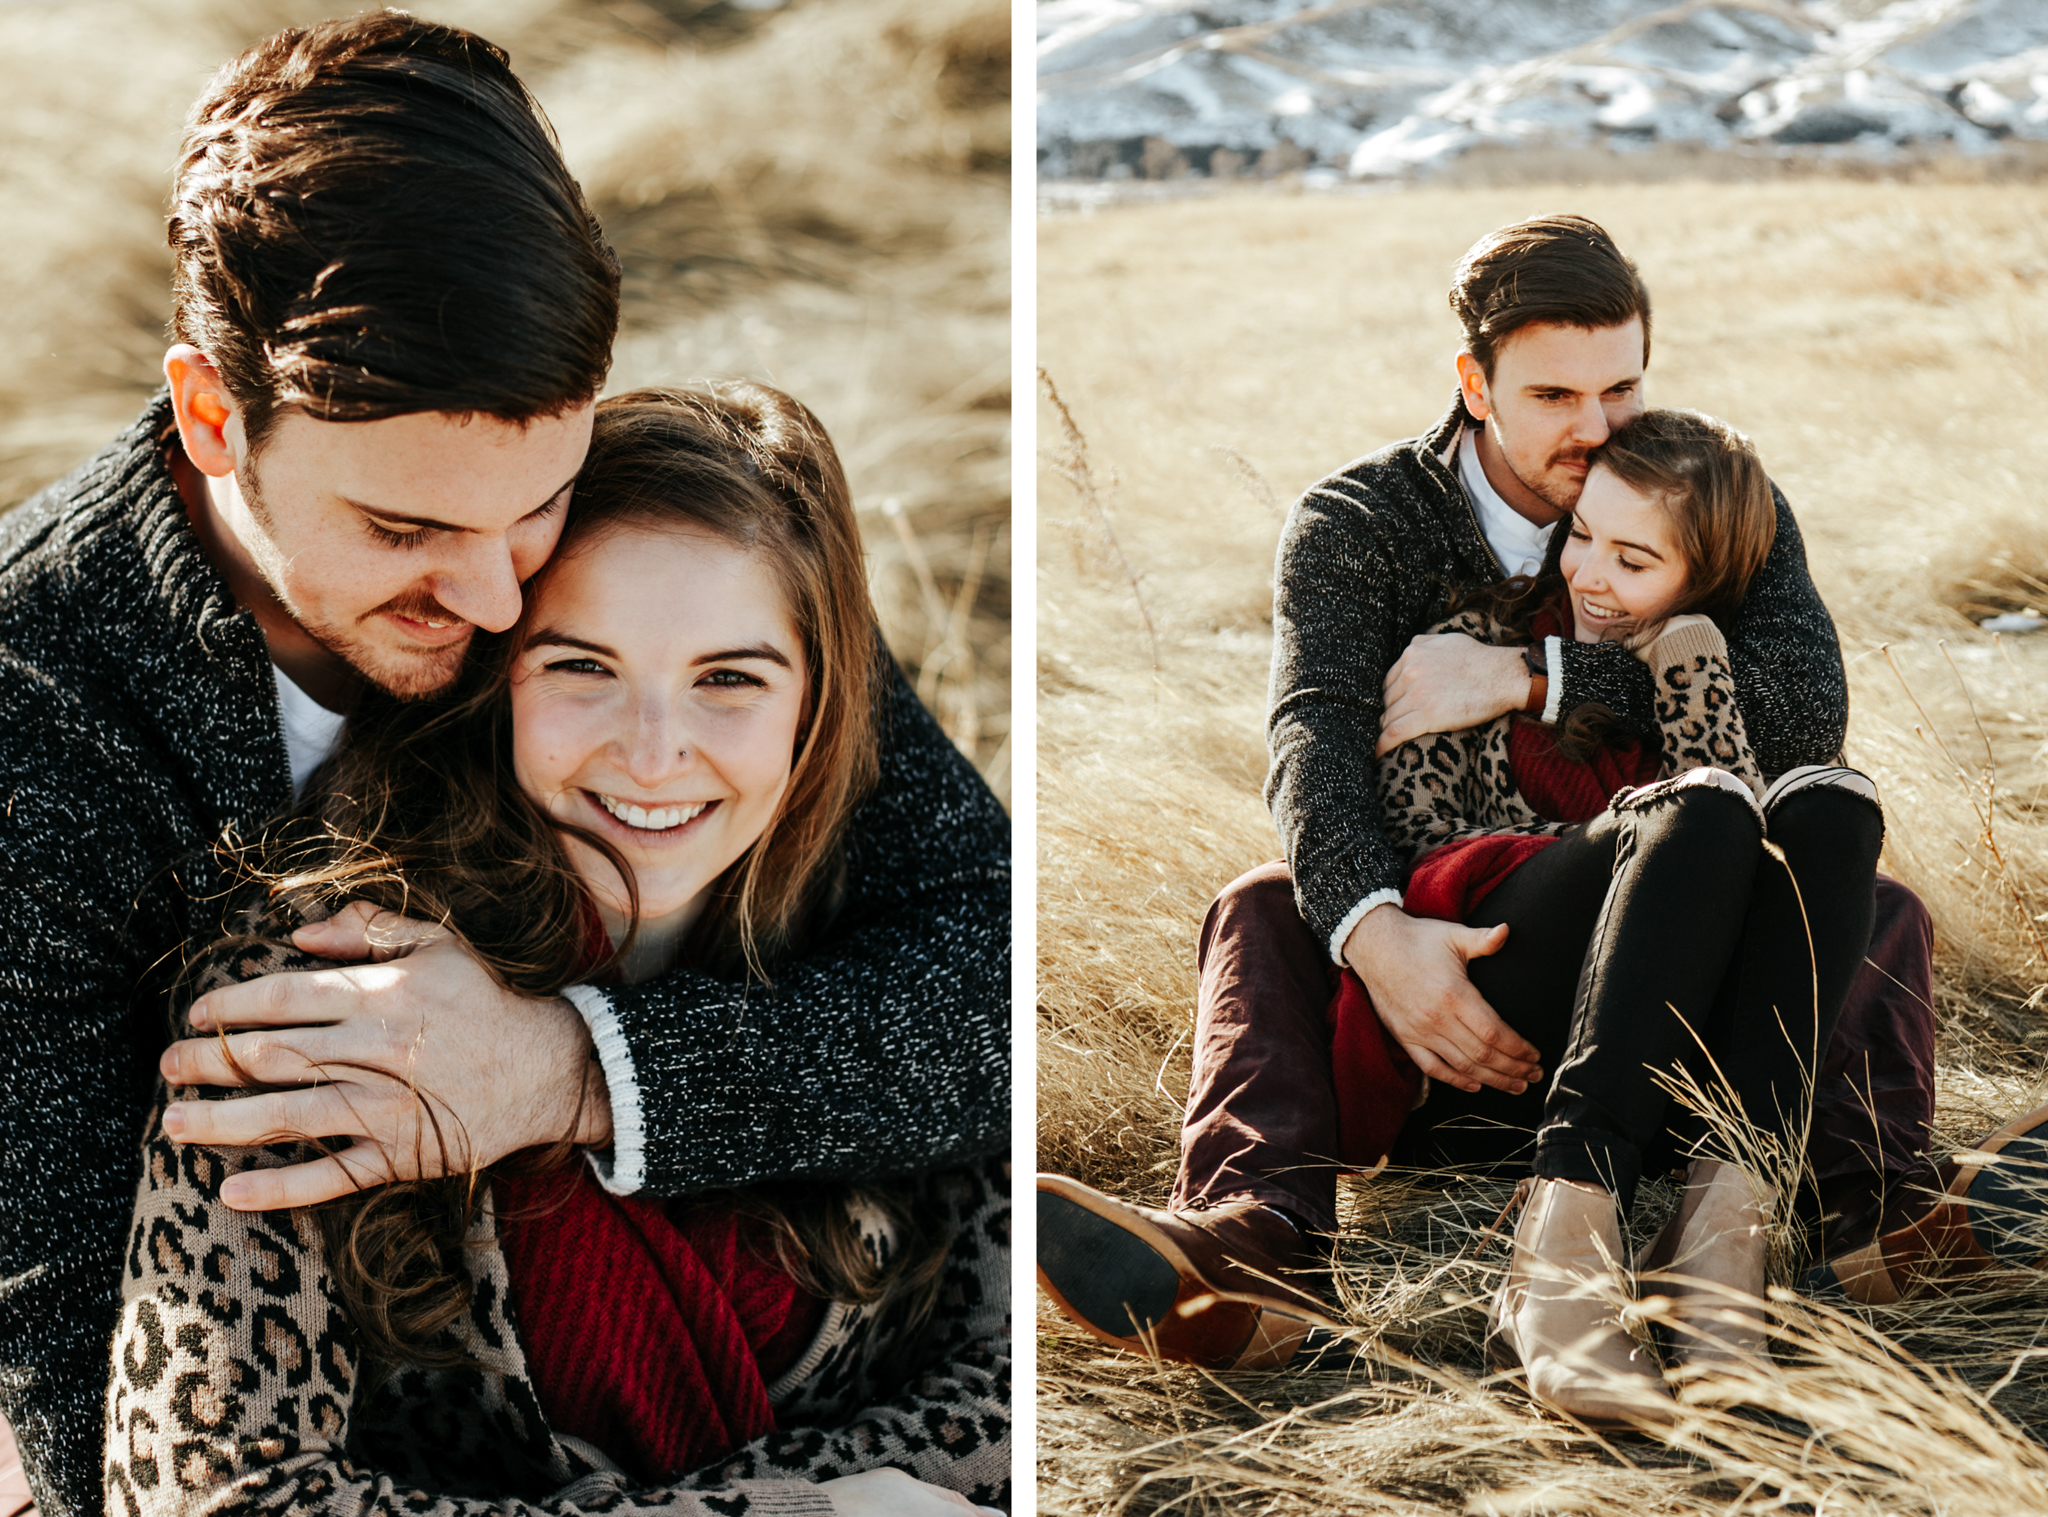 lethbridge-photographer-love-and-be-loved-photography-winter-engagement-emma-tanner-picture-image-photo-101.jpg